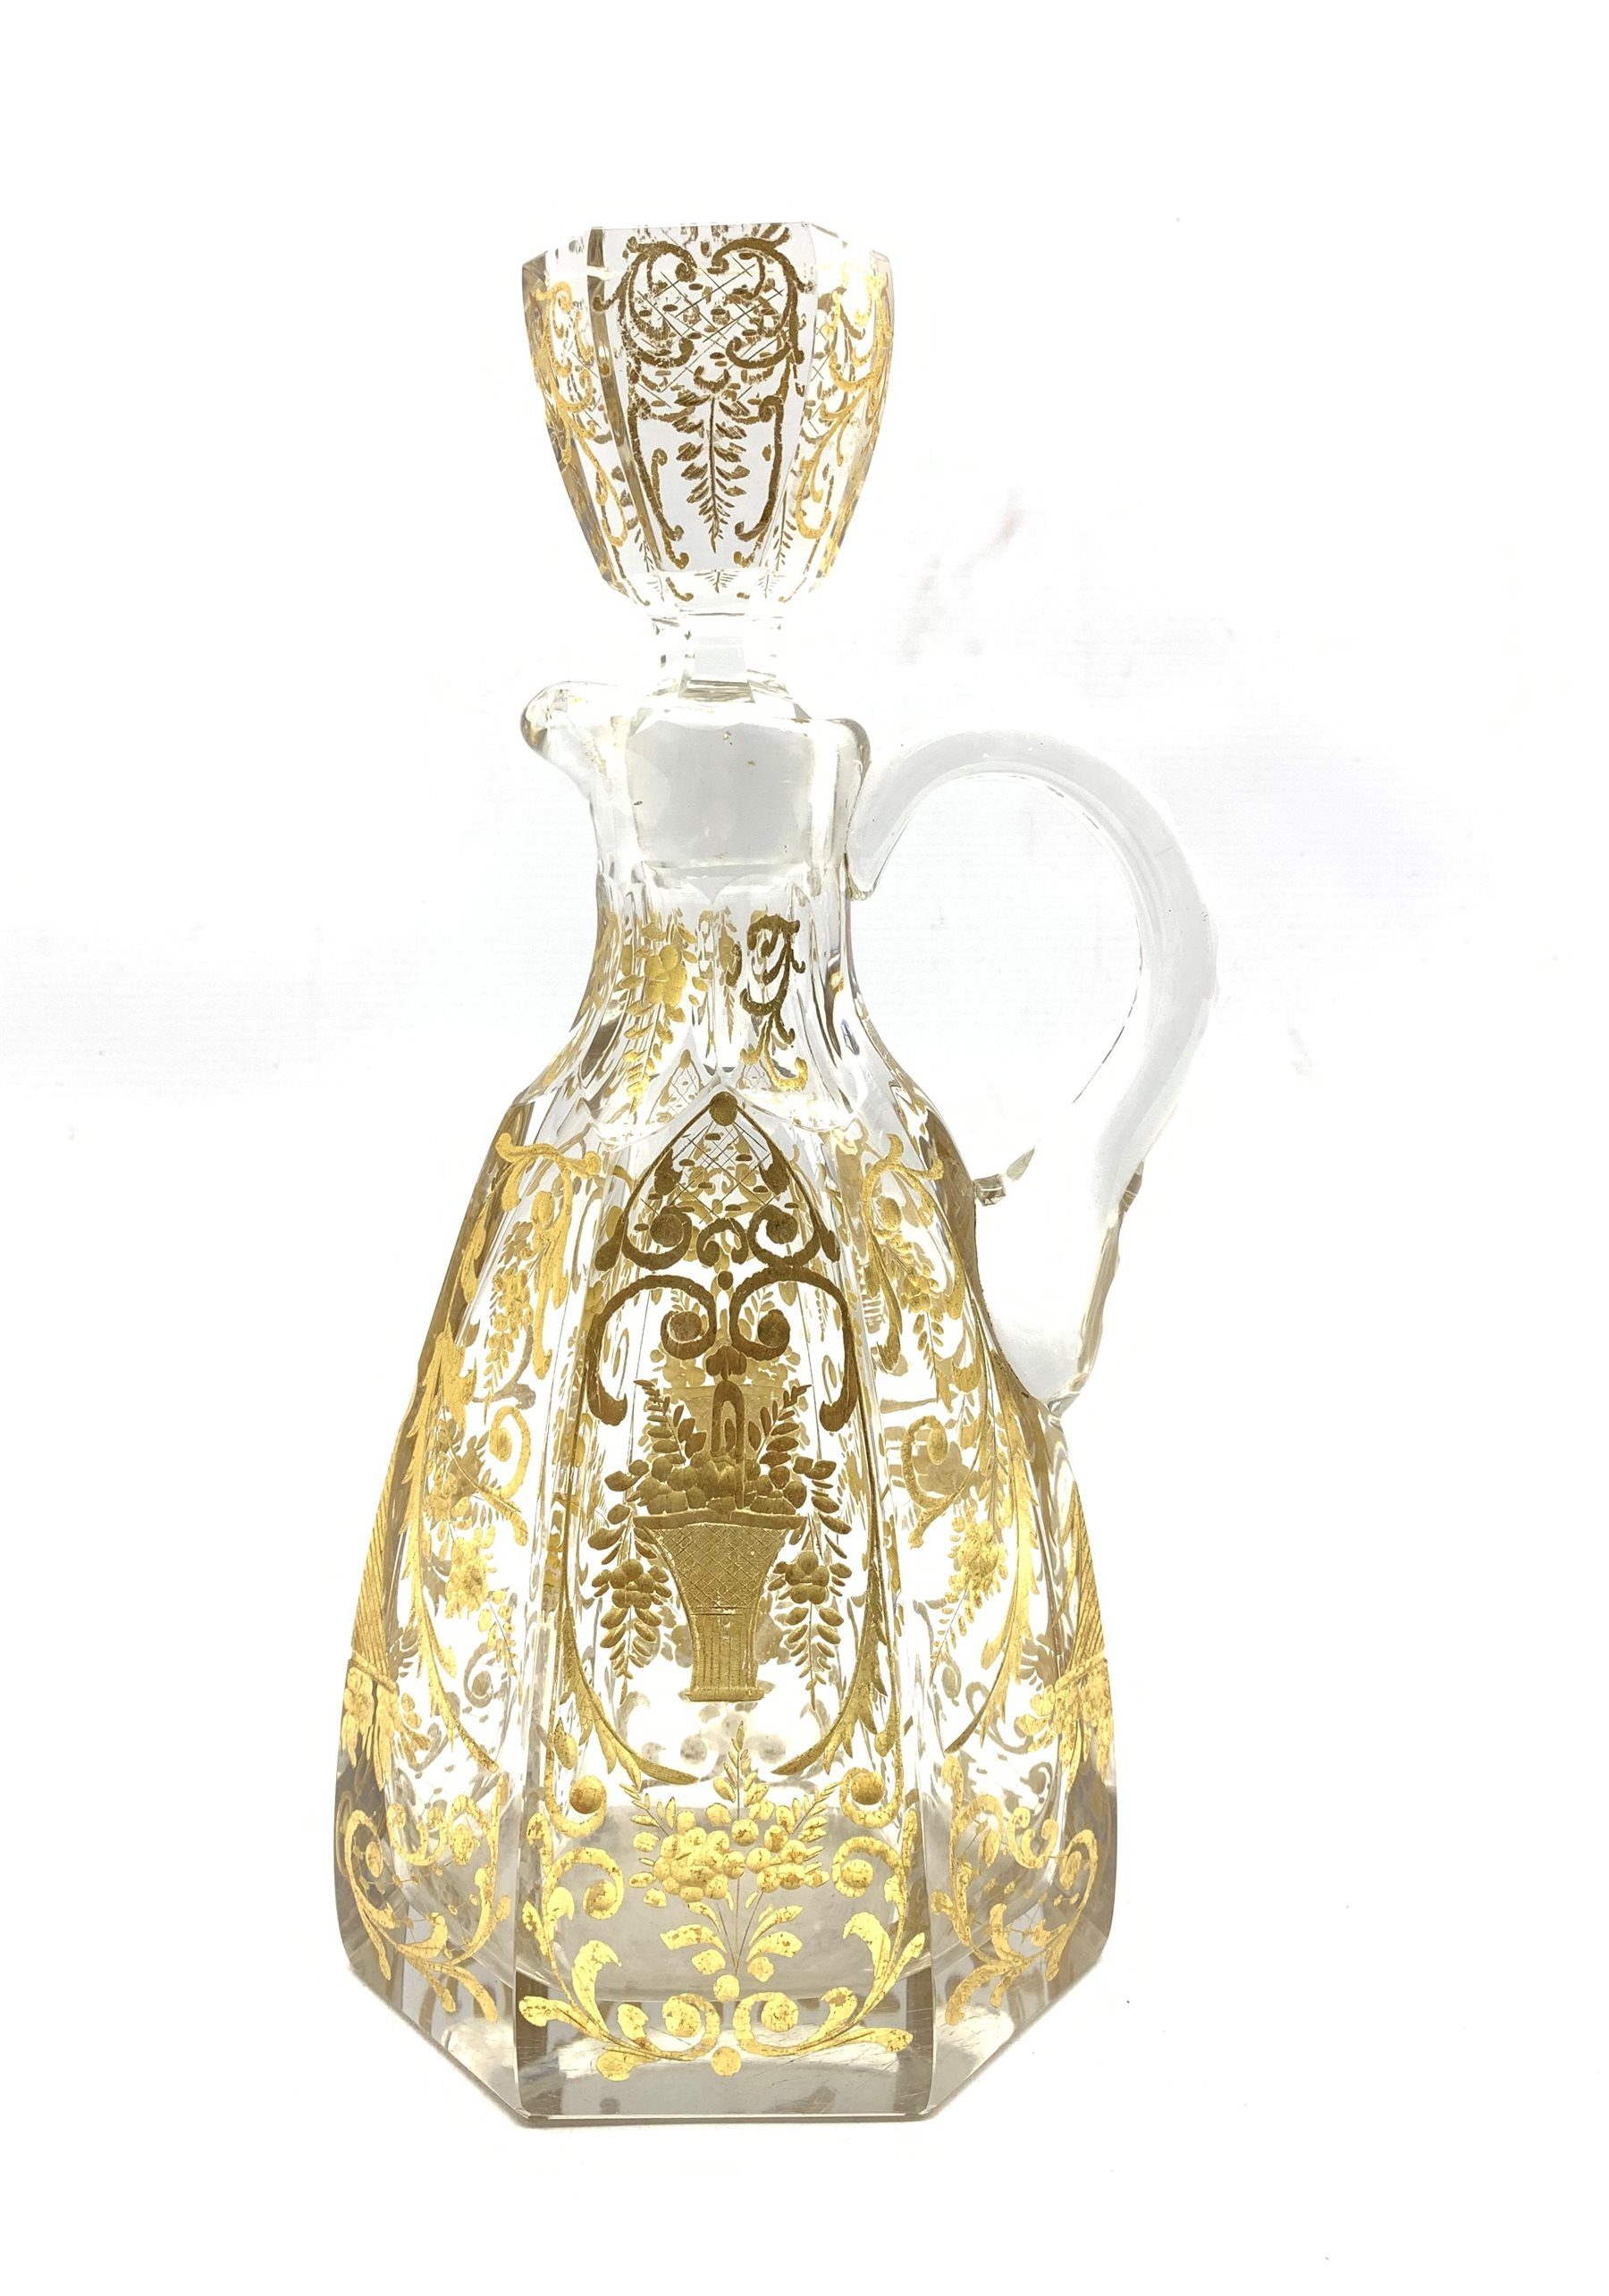 Early 20th century French glass claret jug of hexagonal design incised and gilded with trailing foli - Image 2 of 7